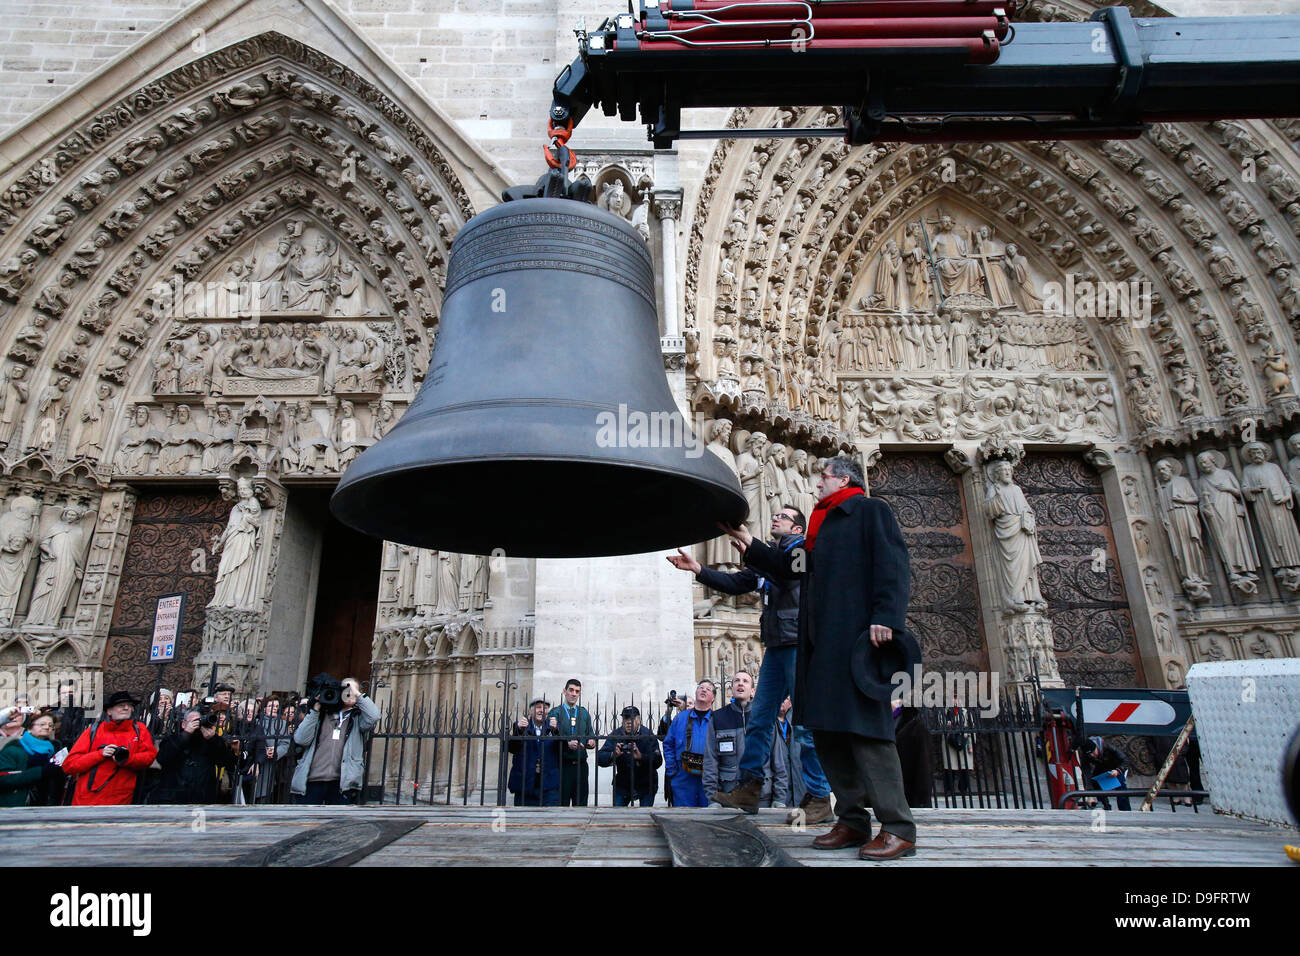 Arrival of the new bell chime, the biggest bell weighing six tons, on 850th anniversary of Notre Dame de Paris, - Stock Image